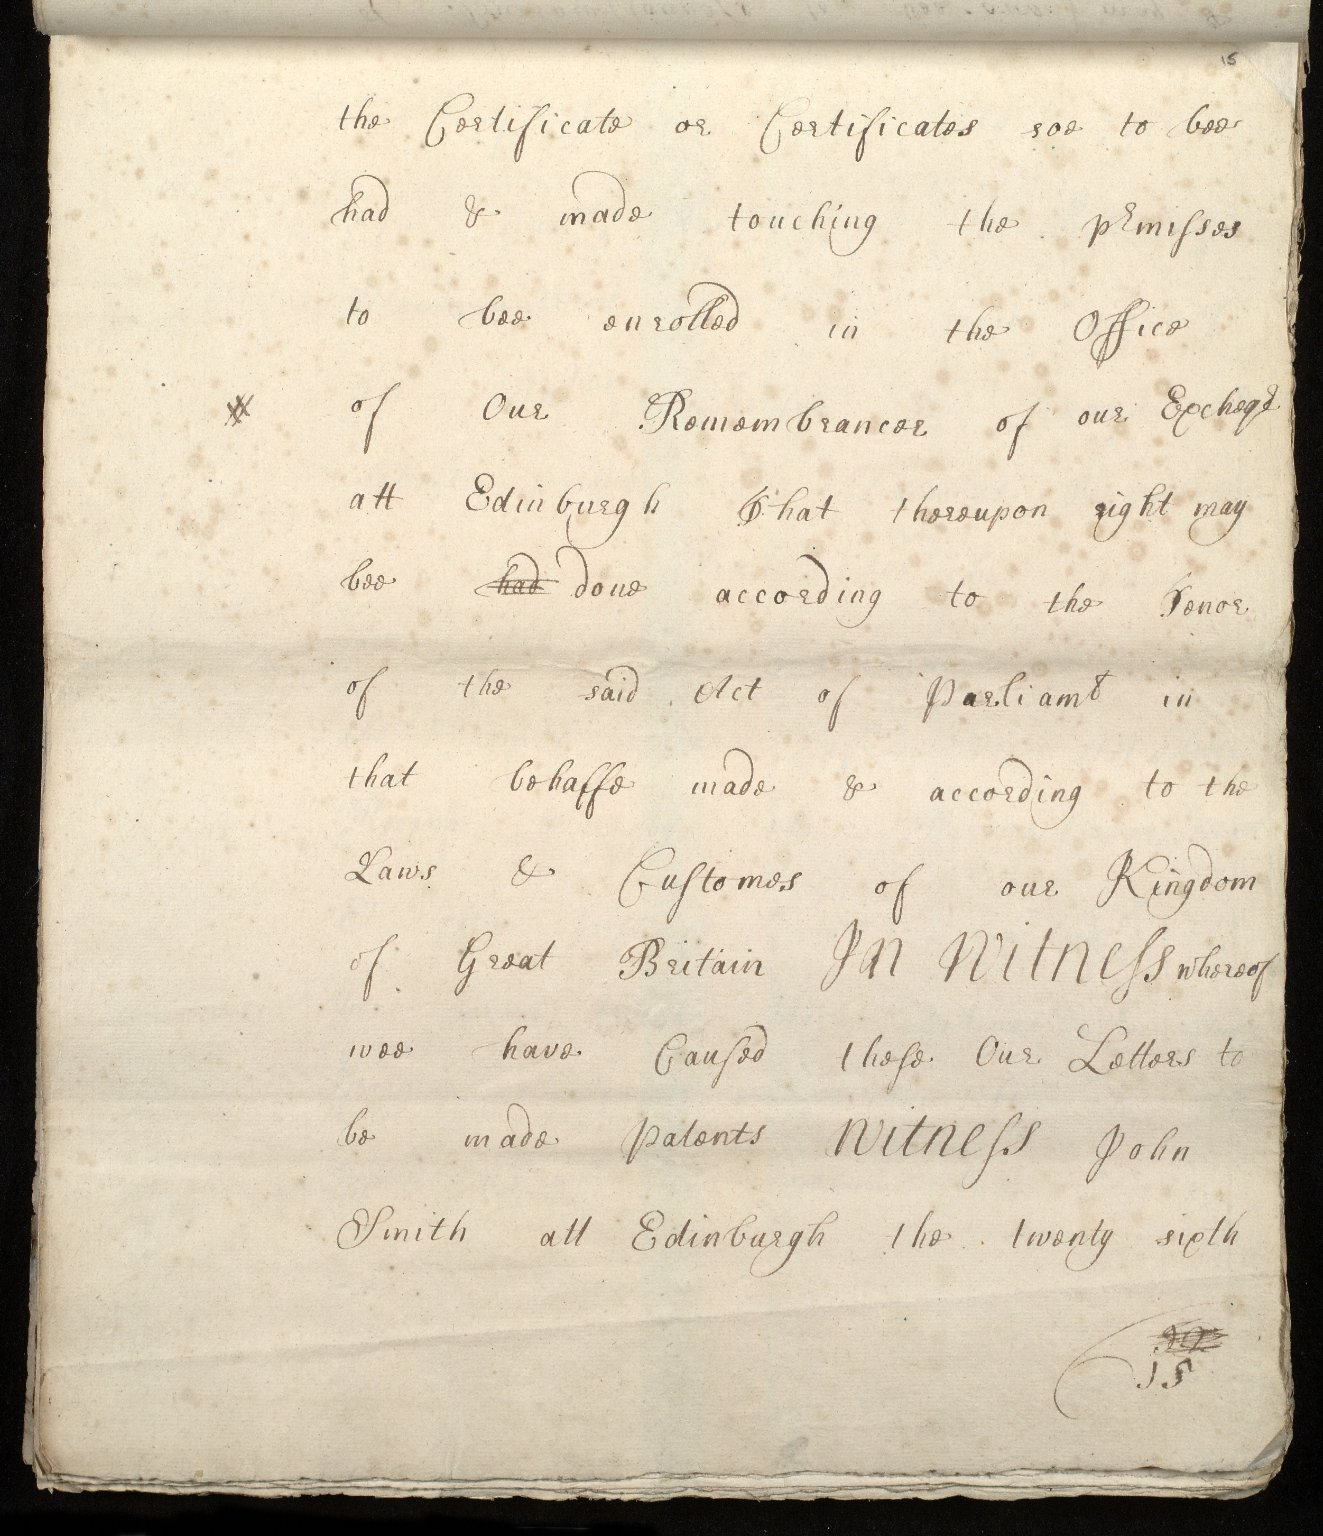 [Commission by Queen Anne to John Adair and others to appoint the town of Borrowstounness (Bo'ness) to be a port and to fix the bounds thereof] [15 of 39]